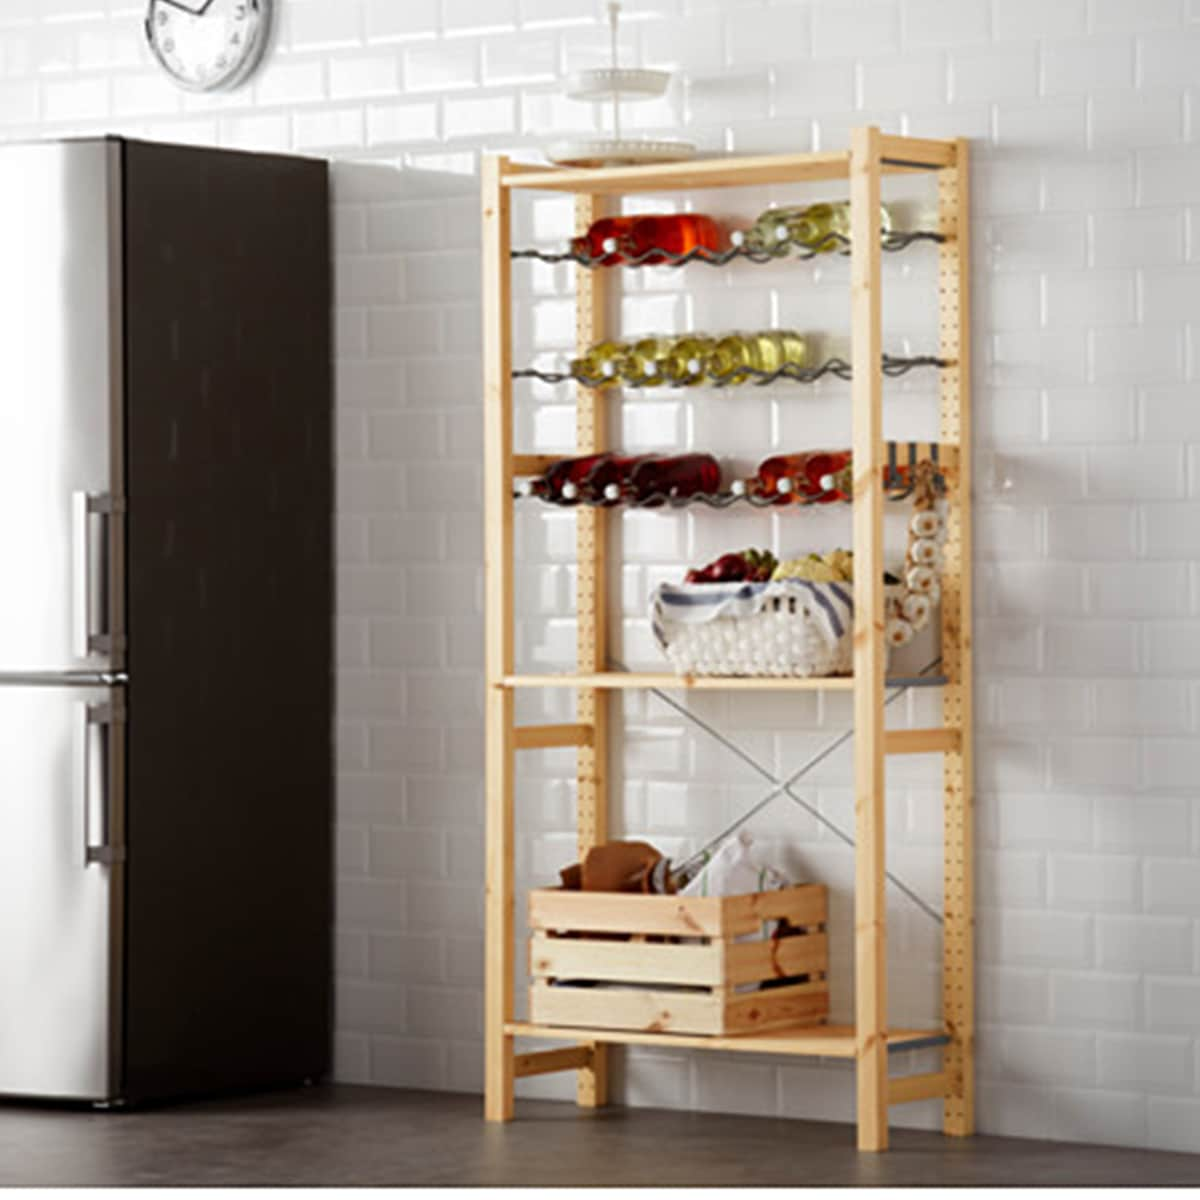 Exceptionnel The Best Kitchen Shelves From IKEA: Gallery Image 6